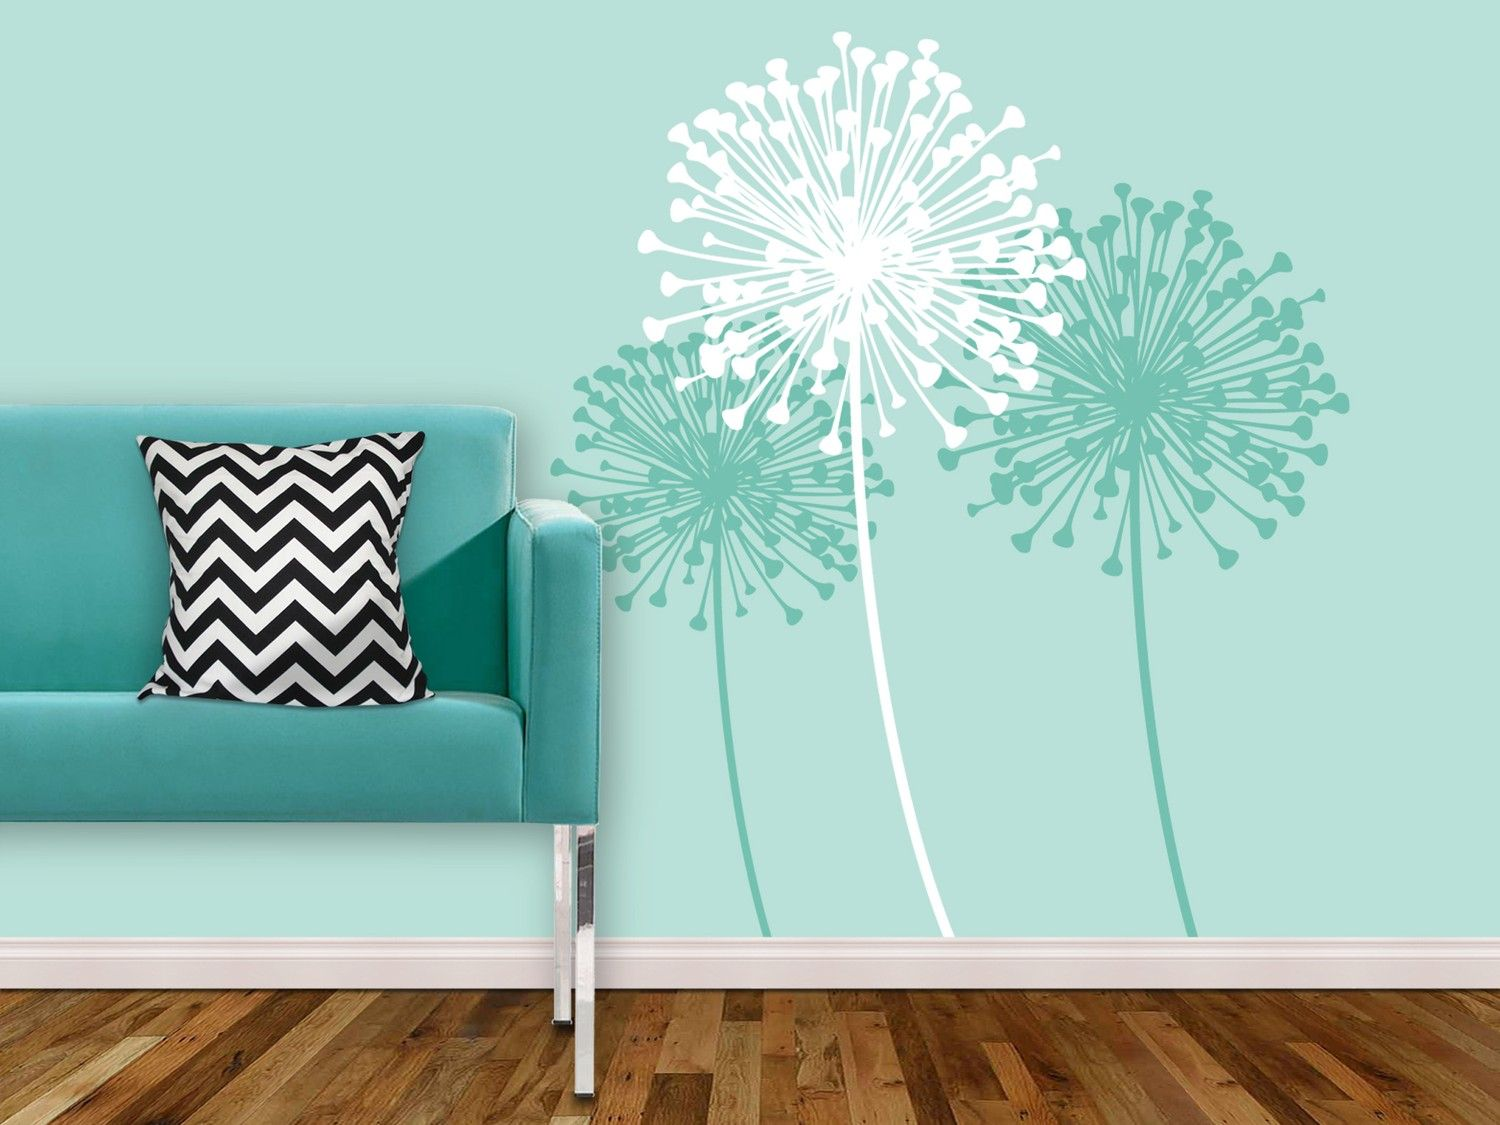 This wall color is perfect and the decals are fun too dandelion by kathwren vinyl wall decal